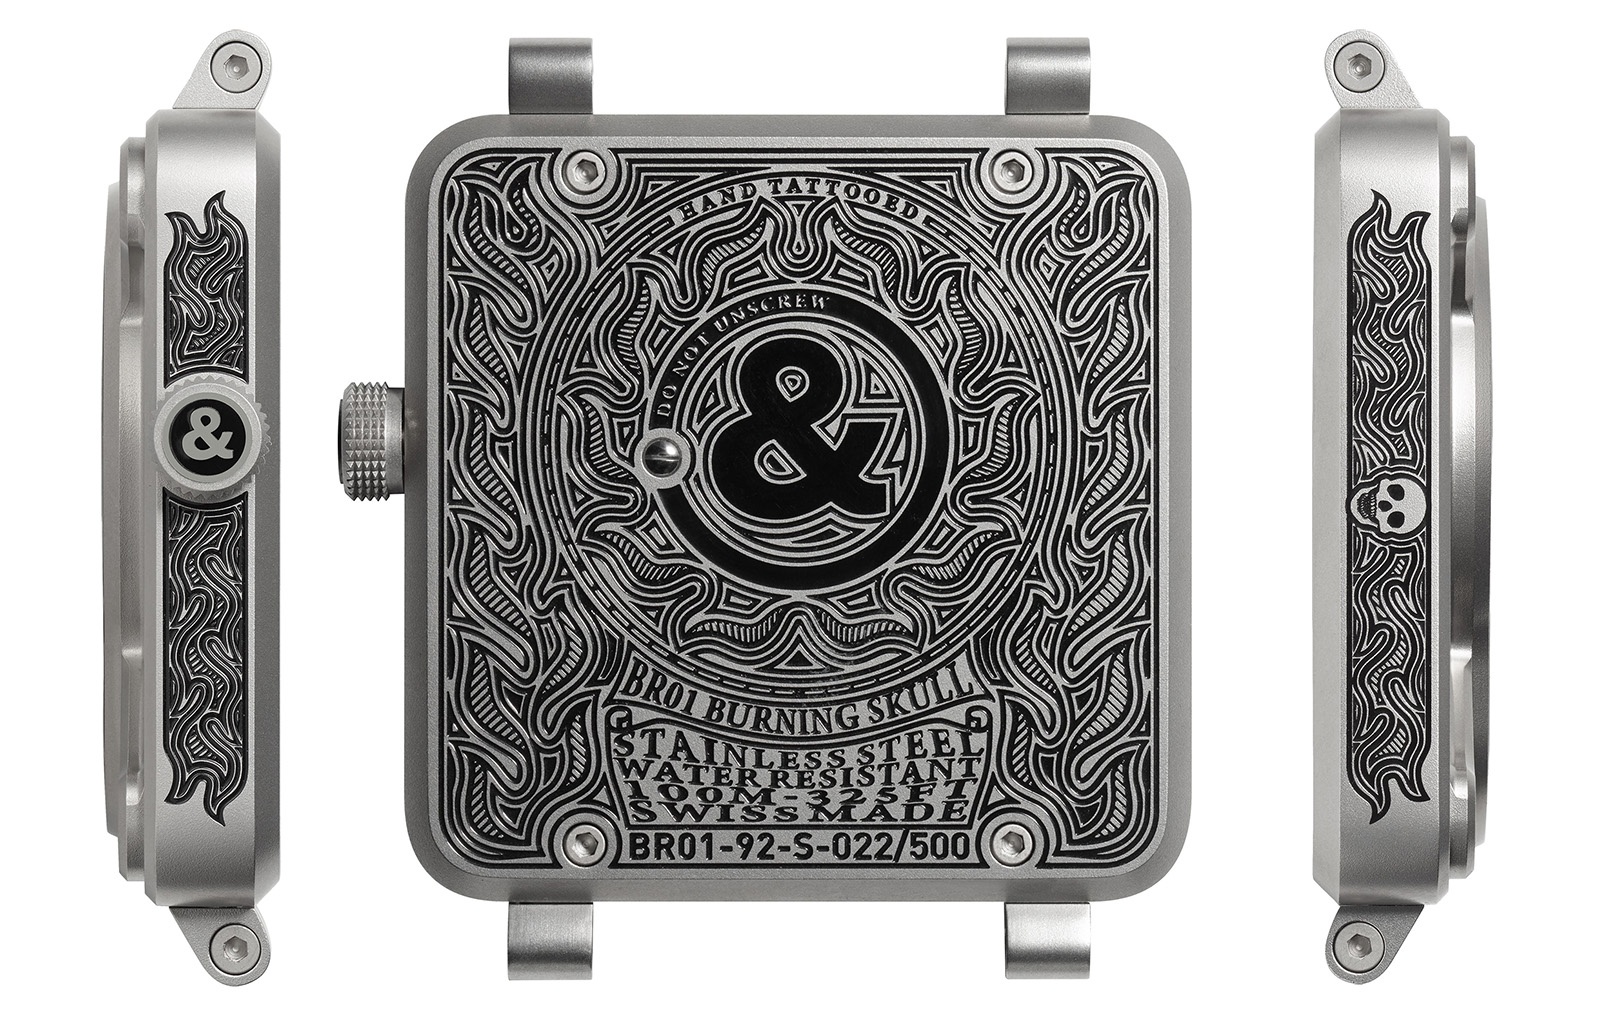 Bell & Ross BR01 Burning Skull - grabados